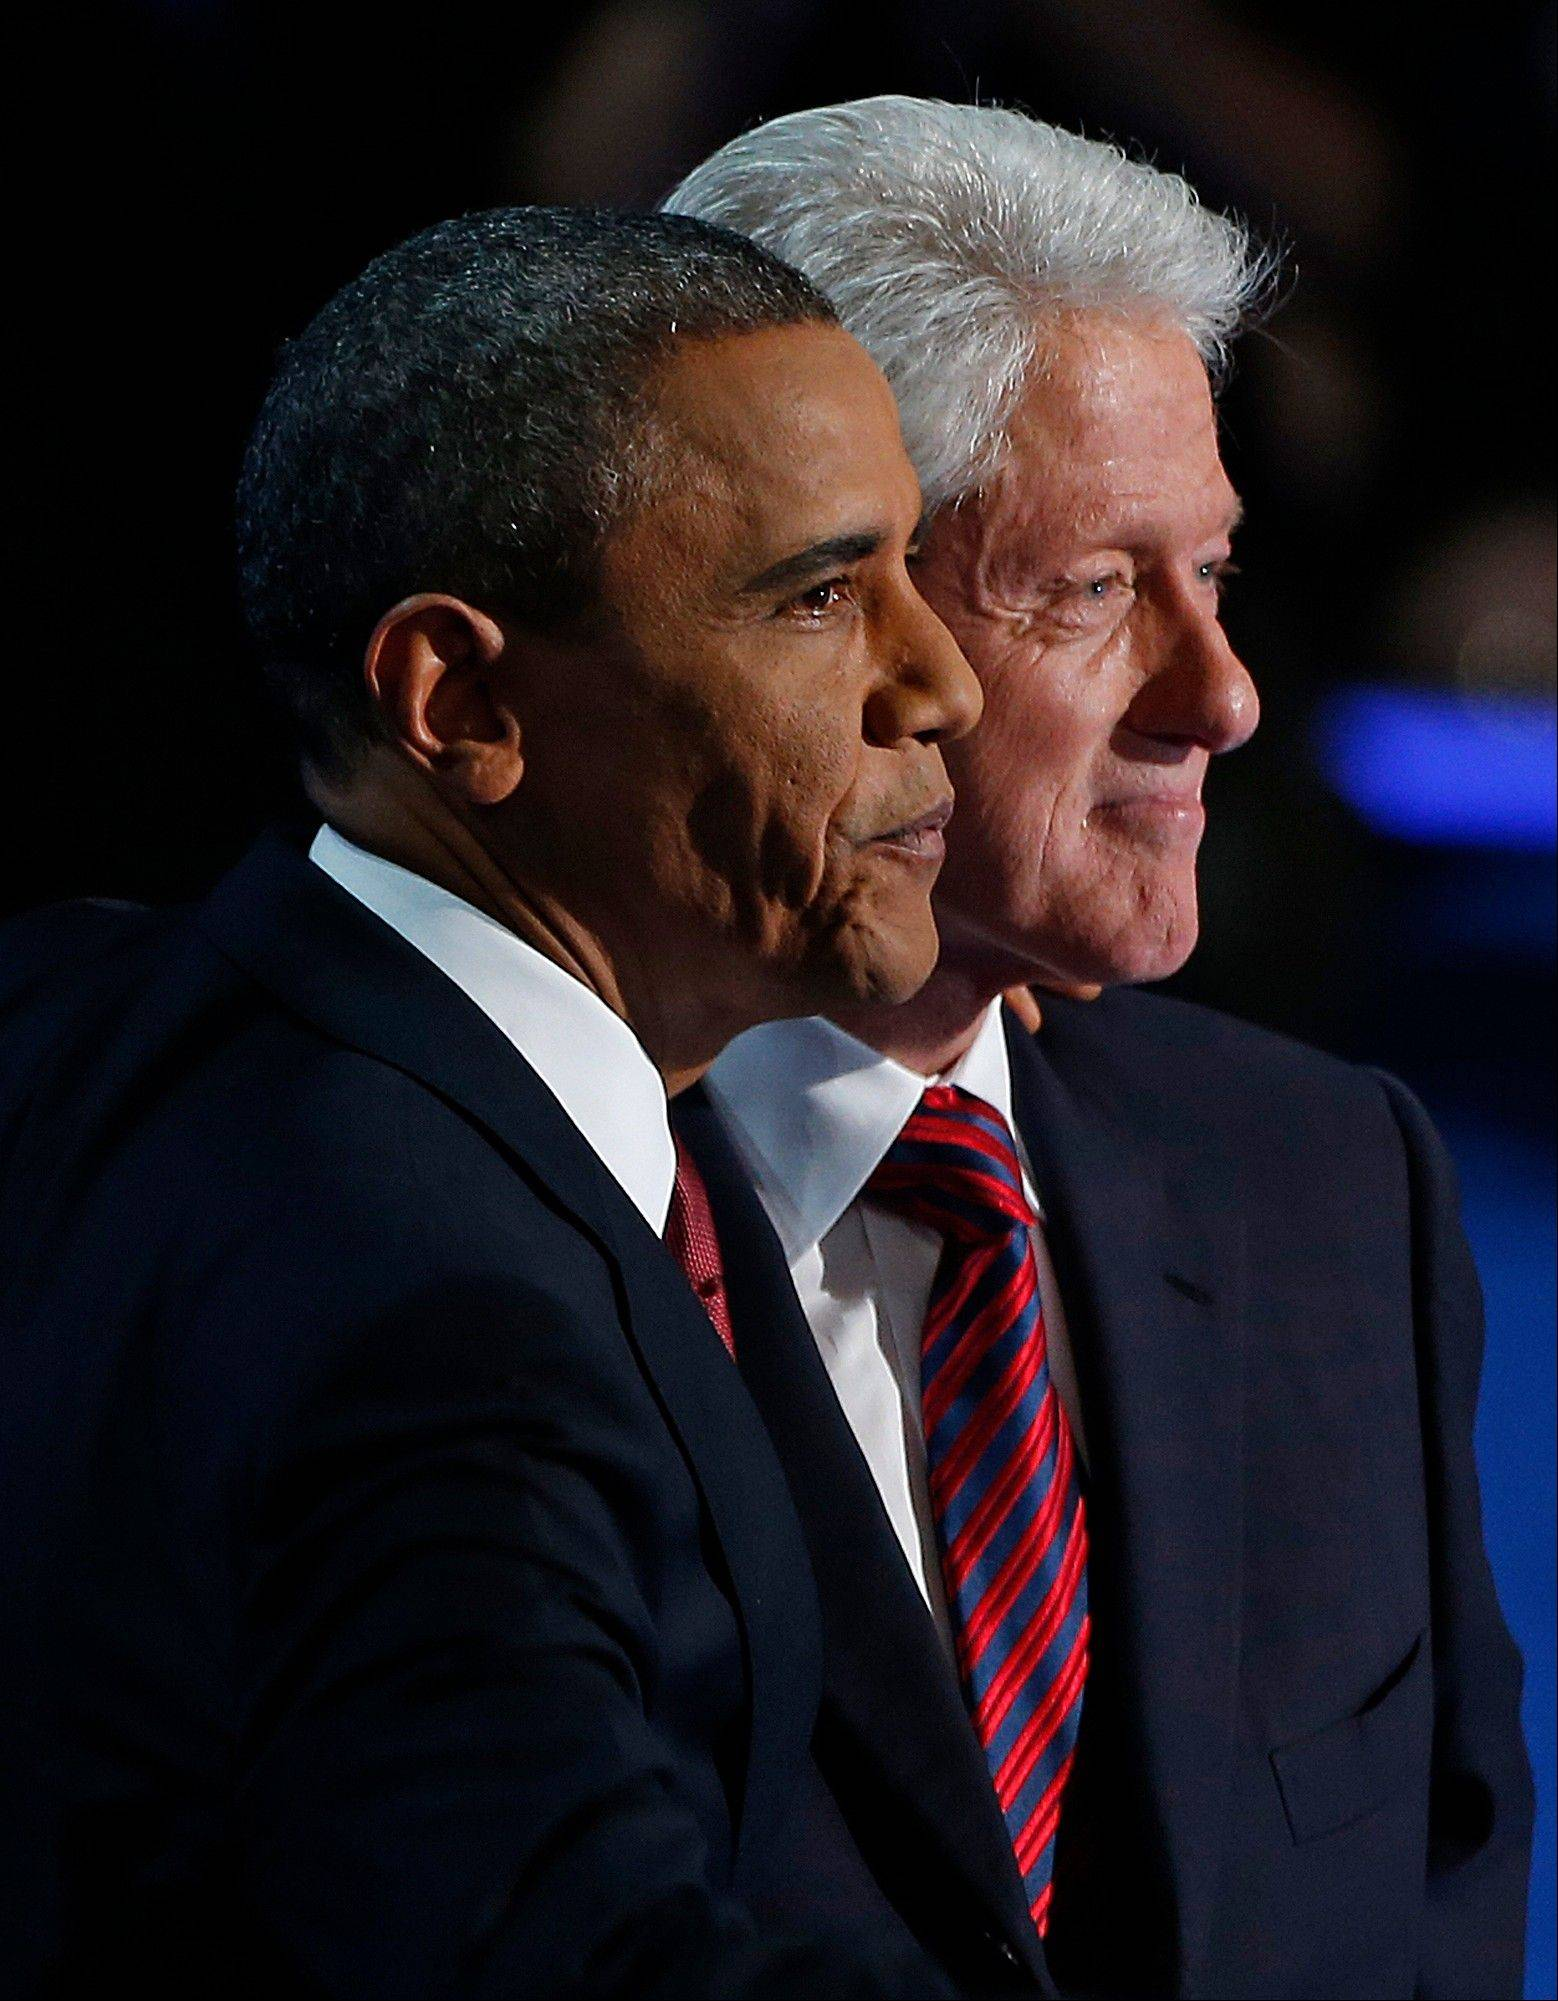 President Barack Obama stands with Former President Bill Clinton after Clintons' address to the Democratic National Convention in Charlotte, N.C., on Wednesday, Sept. 5, 2012.